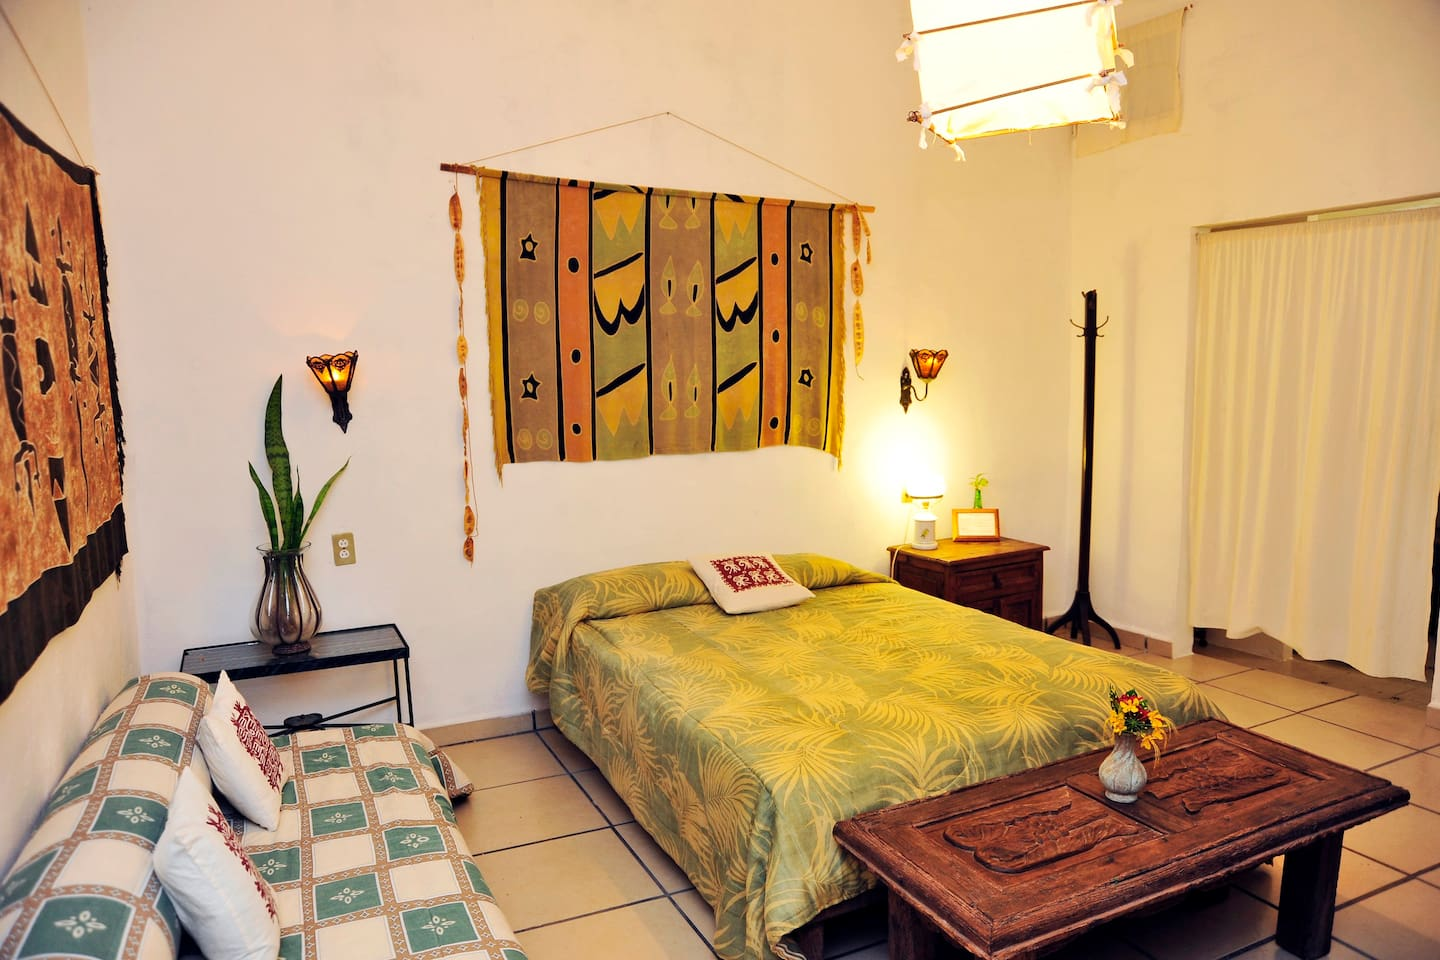 Casitas Kinsol Guesthouse in Puerto Morelos - near Cancun - Room #5 - A full-size bed and a sofa that converts in a